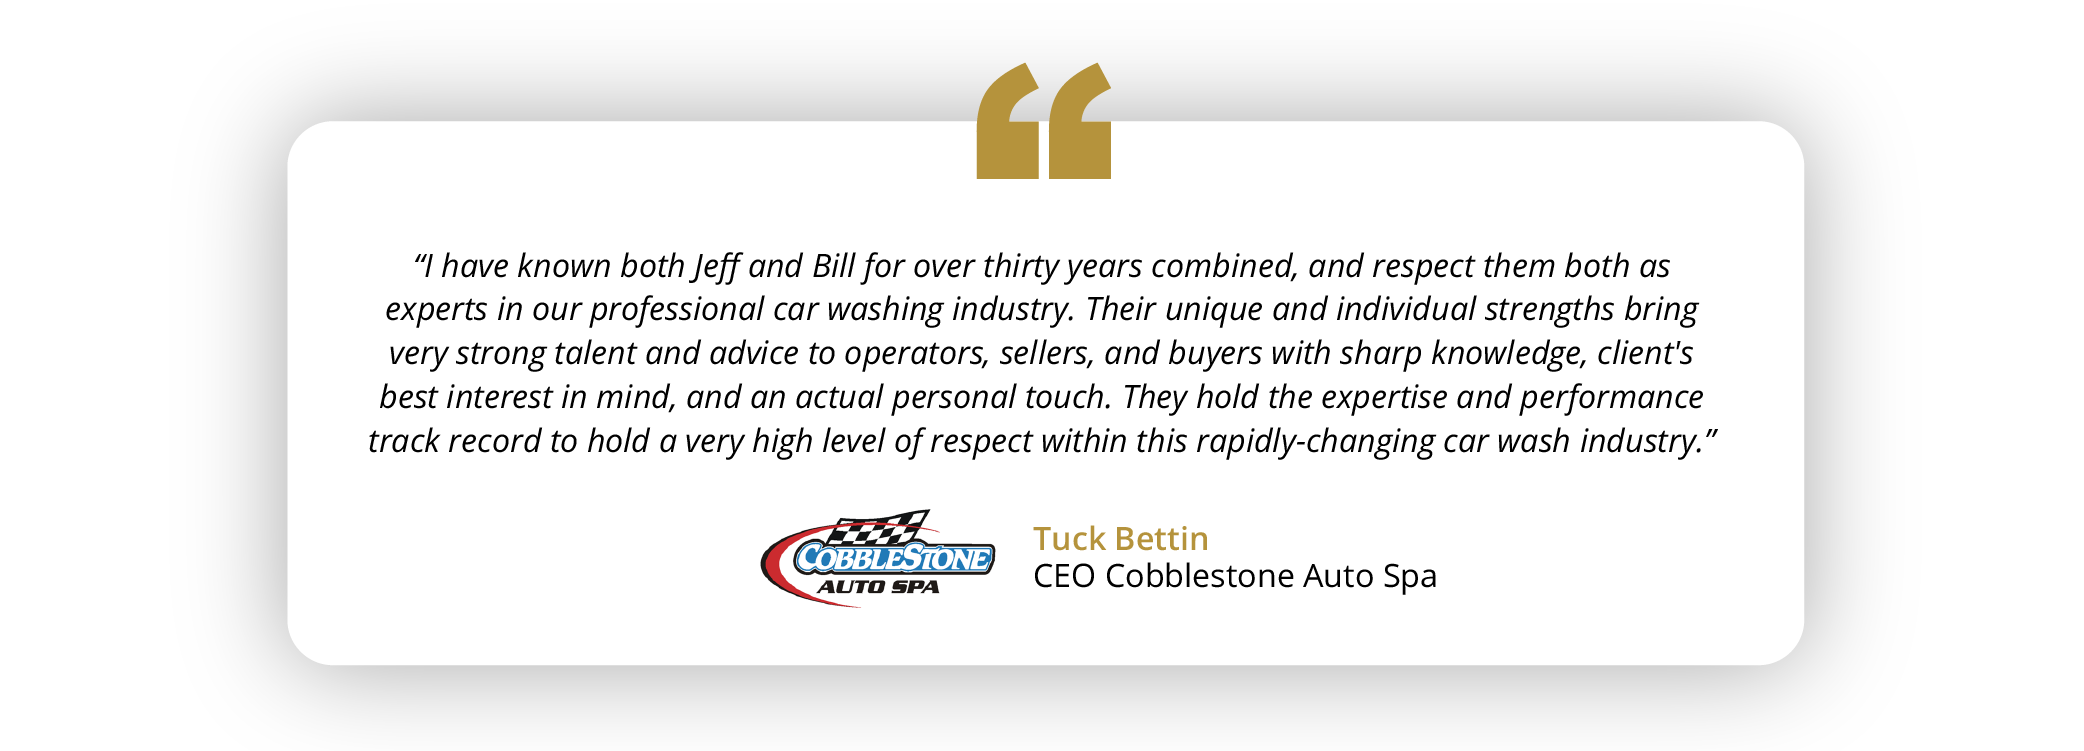 """""""I have known both Jeff and Bill for over thirty years combined, and respect them both as experts in our professional car washing industry. Their unique and individual strengths bring very strong talent and advice to operators, sellers, and buyers with sharp knowledge, client's best interest in mind, and an actual personal touch. They hold the expertise and performance track record to hold a very high level of respect within this rapidly-changing car wash industry."""" Tuck Bettin - CEO Cobblestone Auto Spa"""